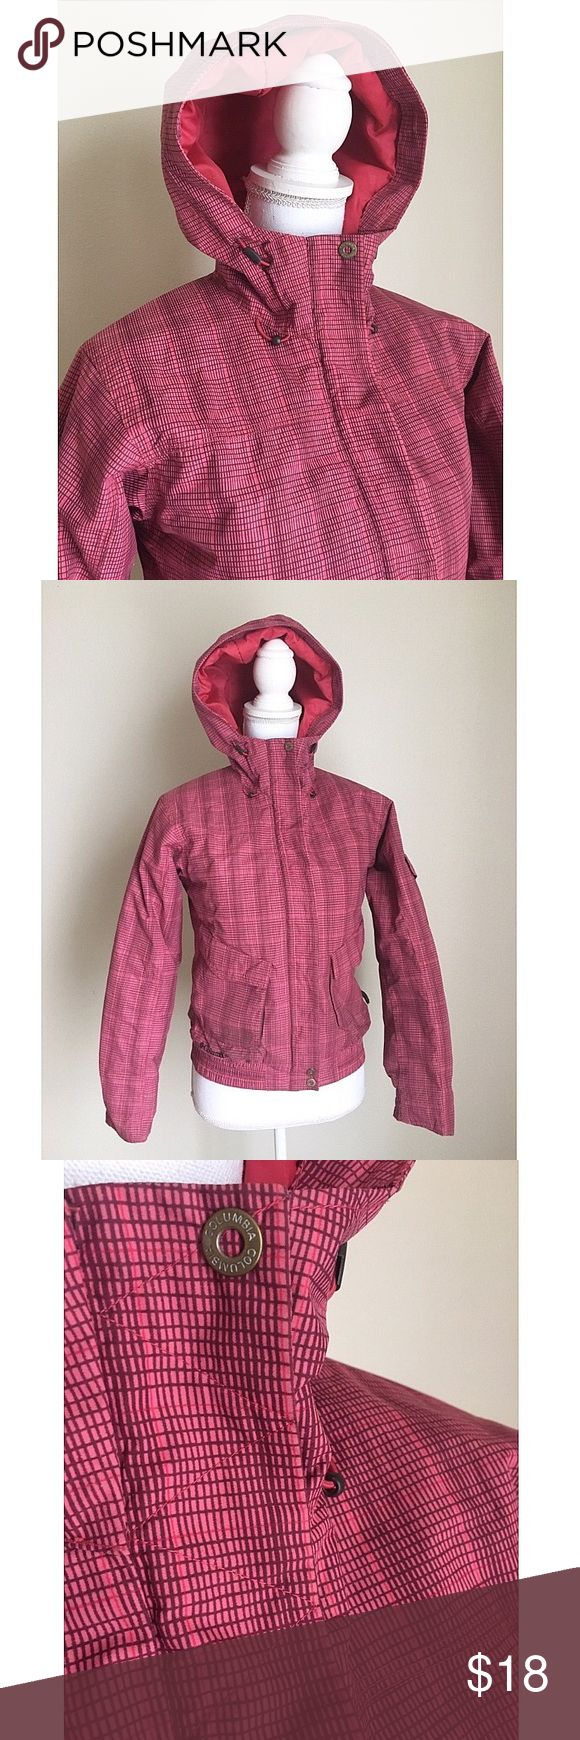 Columbia Warm Coat ✨ Columbia Coat - Warm & weatherproof - Striped design throughout - Perfect condition -Price is FIRM, retails for over $200 ⚜ Size XS Columbia Jackets & Coats